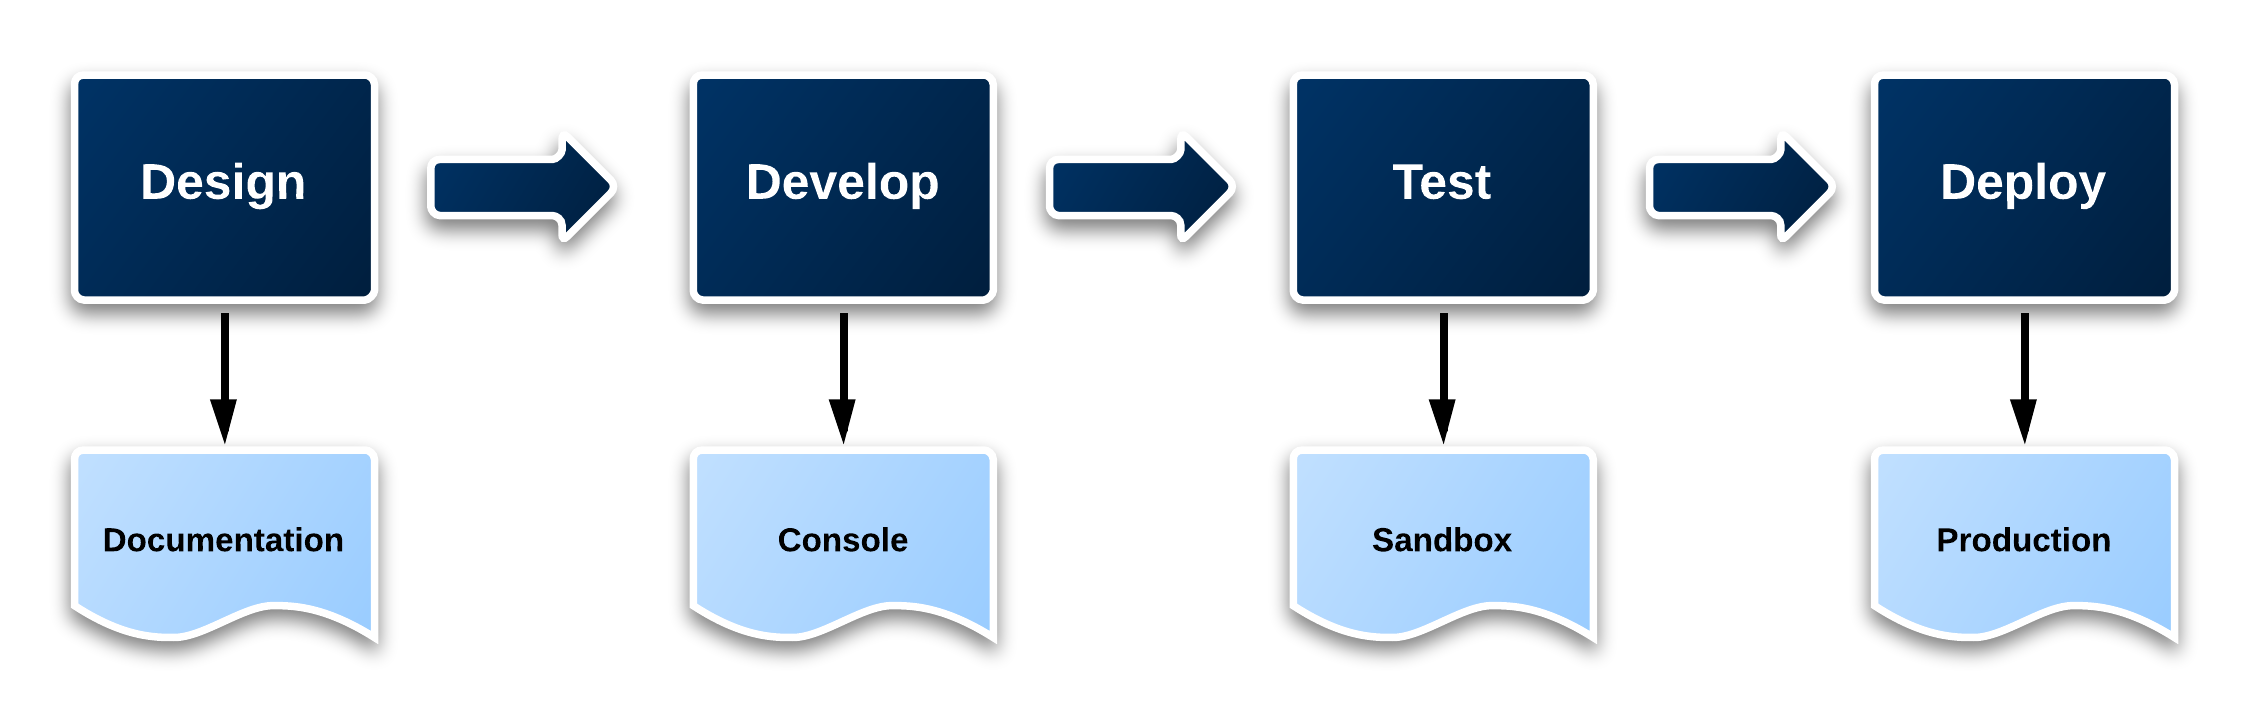 Figure 7 - Development Lifecycle in the Cloud